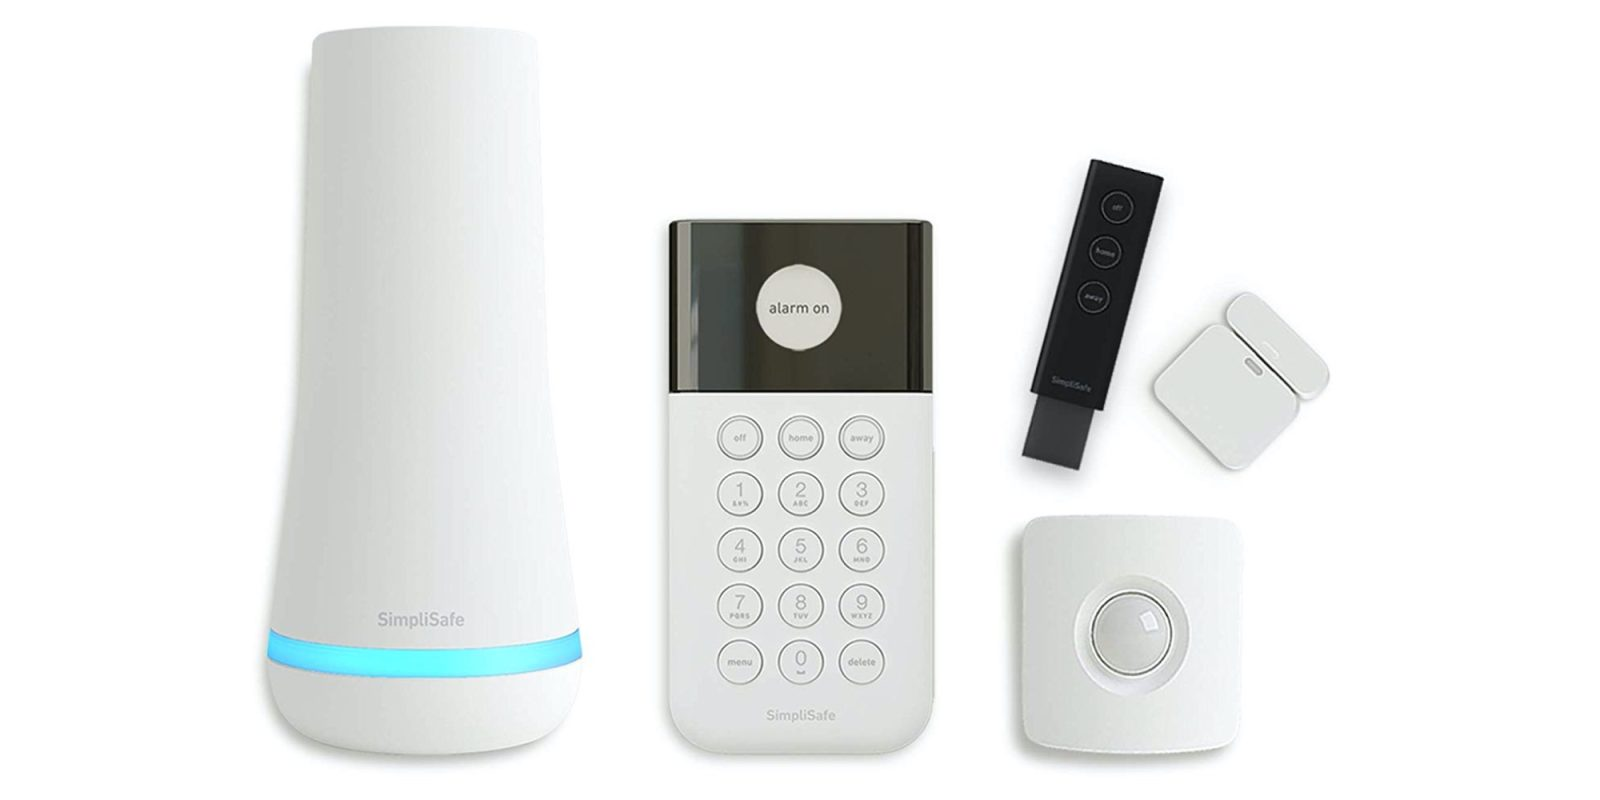 Save 50% on SimpliSafe's 5-Piece Security System at an Amazon low of $112.50